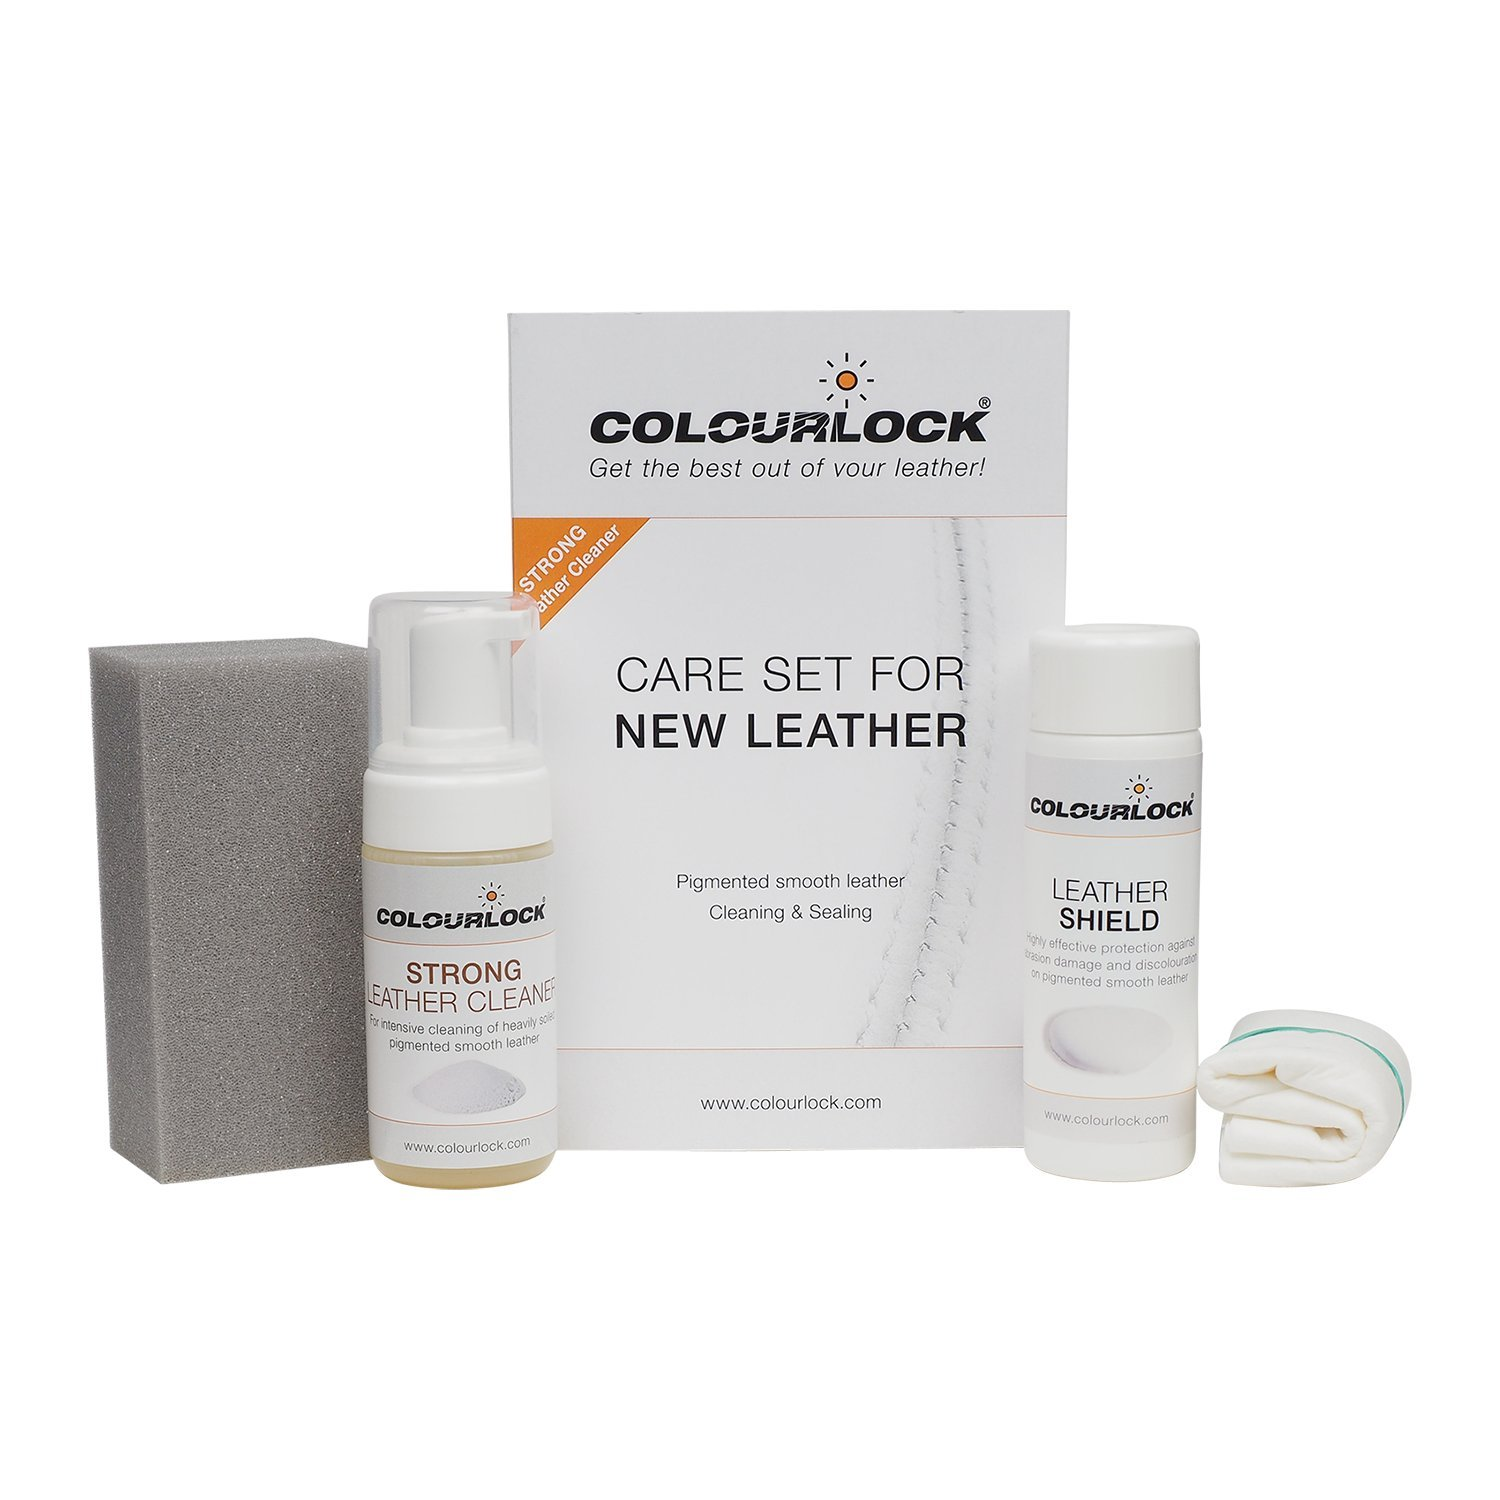 Colourlock Leather Shield Kit - Strong Cleaner & Leather Shield for Cleaning and Protection Against dye transfers on Furniture, Jackets, Handbags & Protection Against Scuffs on car Seats (Regular) by Colourlock